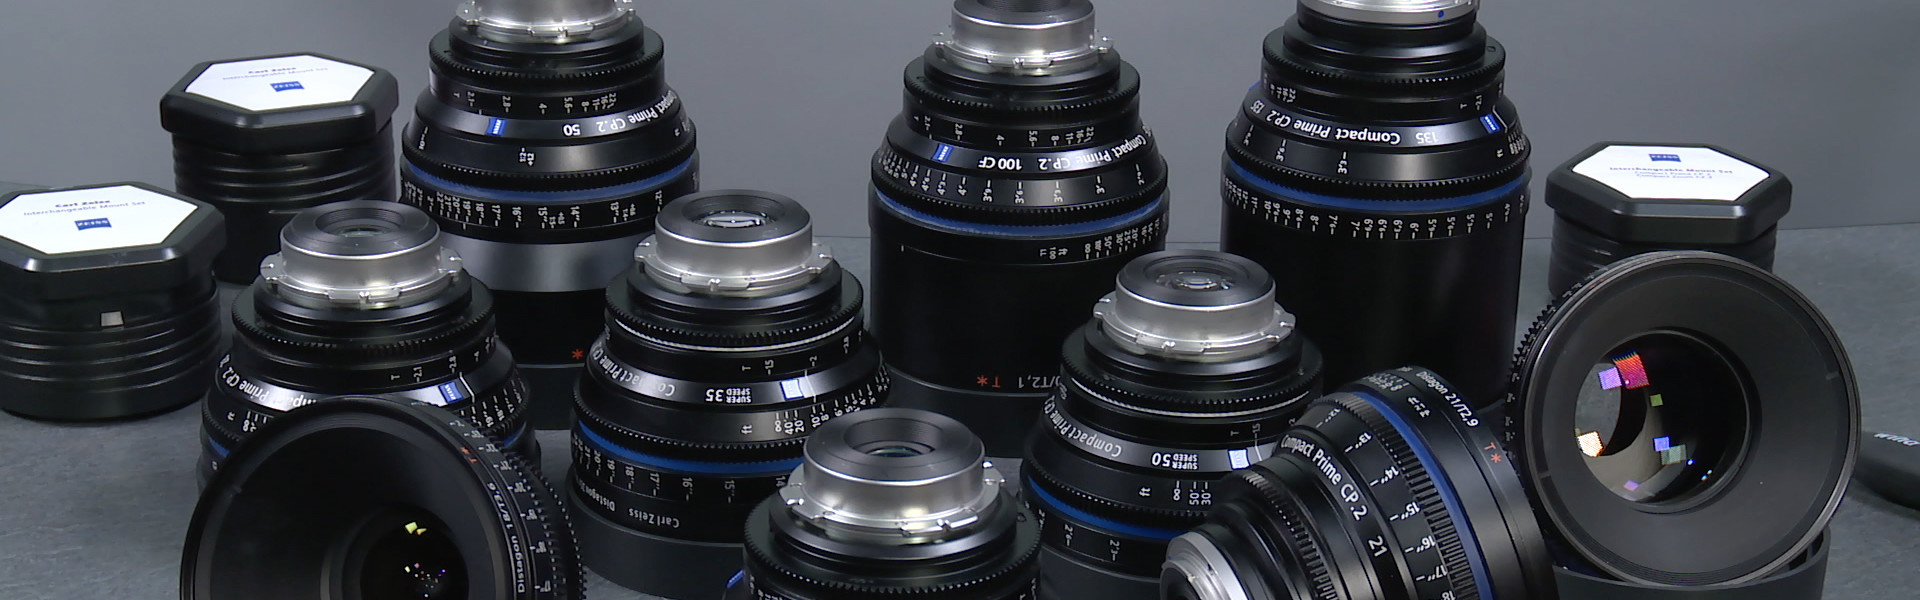 Header image for article At the Bench: An Inside Look at Zeiss Cinema Lenses